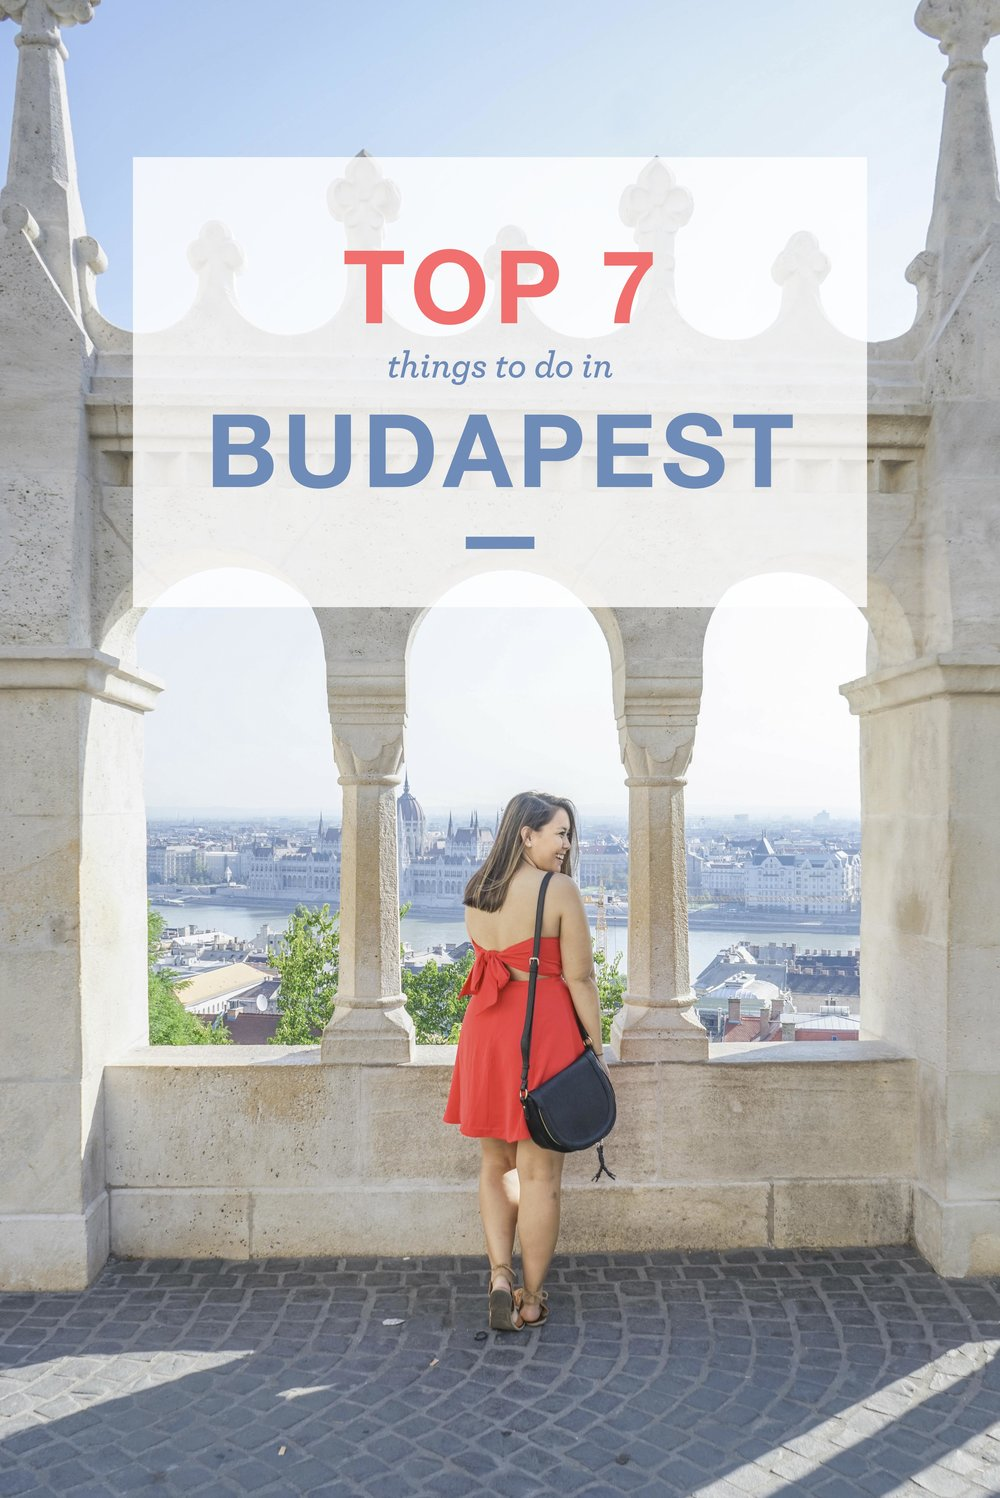 Top 7 Things to do in Budapest